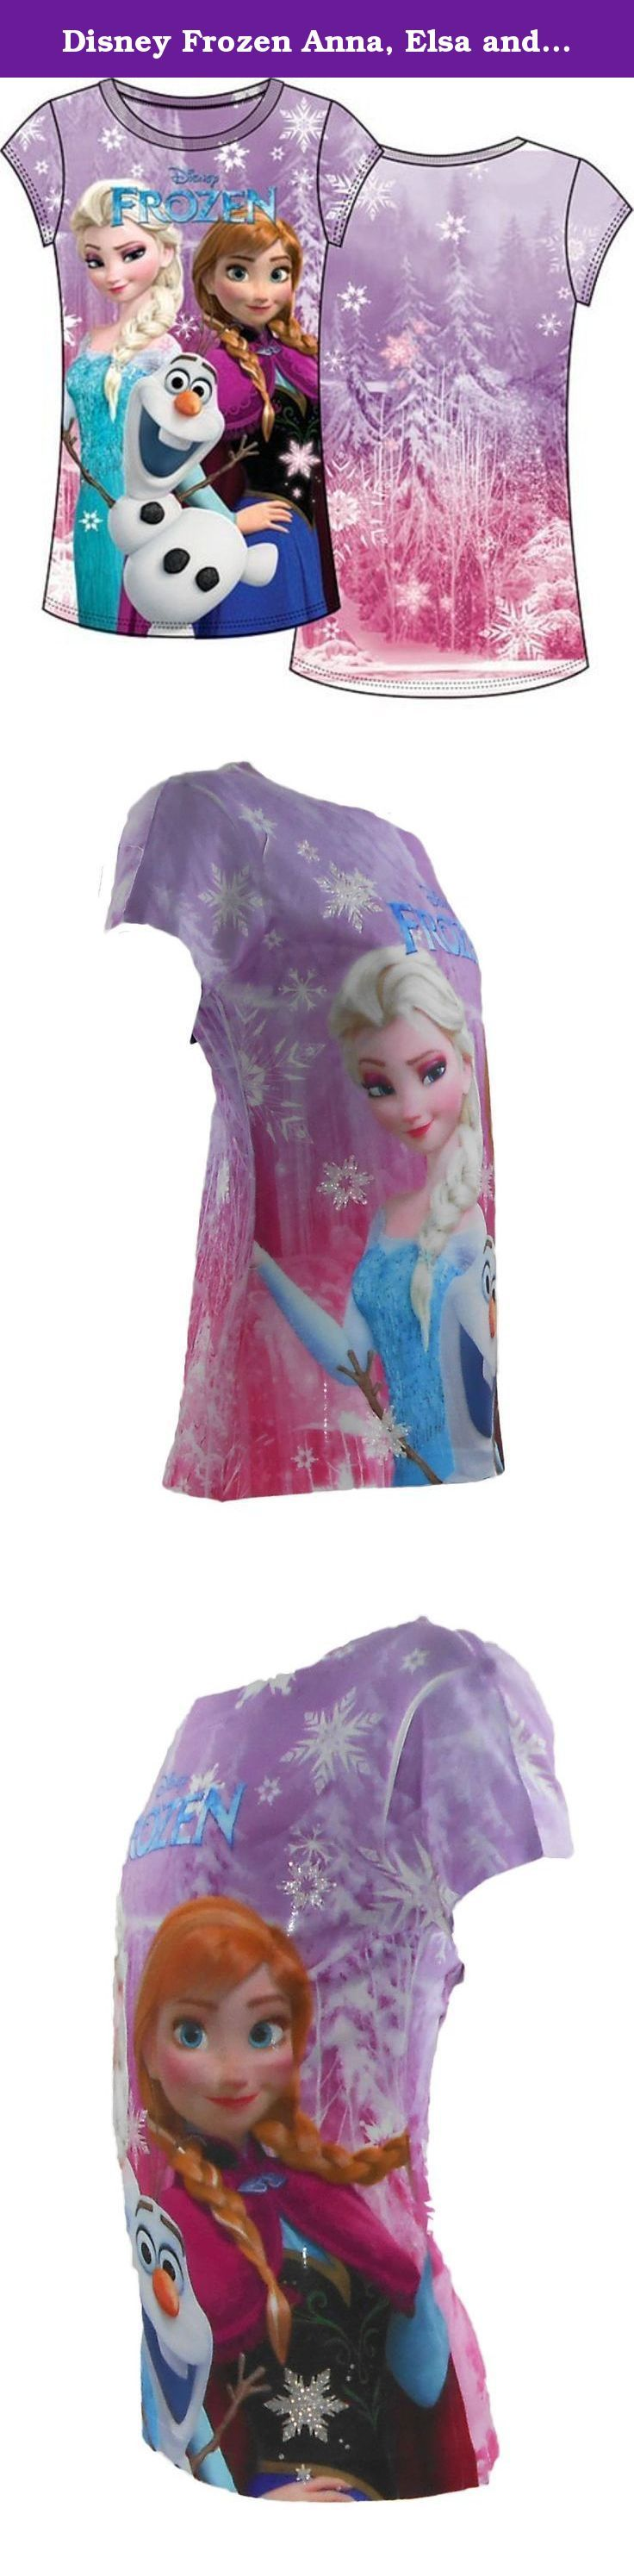 Disney Frozen Anna, Elsa and Olaf Characters, Light Pink Fitted Tee Large (Size 10-12). Get your Frozen tee shirts now! Longer and wider for a fit everyone is sure to love. Pre-shrunk and machine washable.